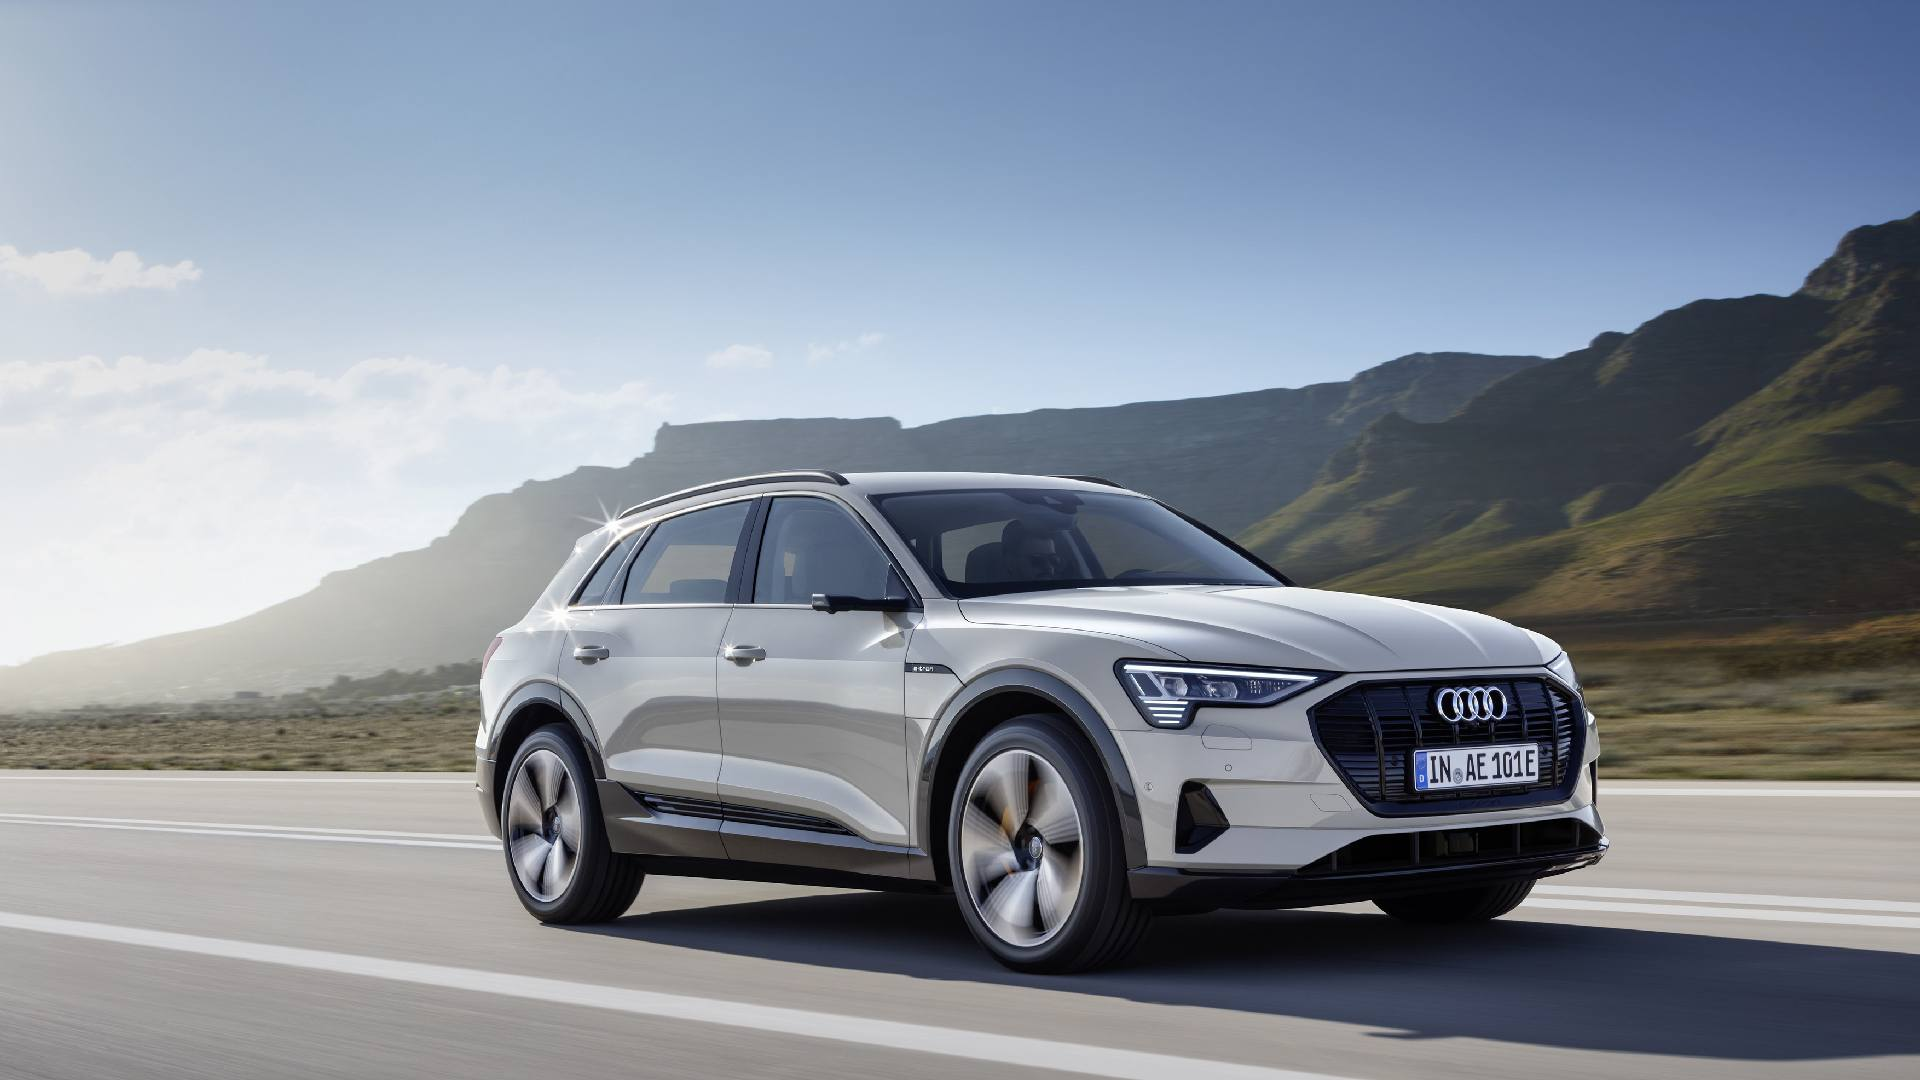 2019 audi e tron first electric suv from audi revealed. Black Bedroom Furniture Sets. Home Design Ideas